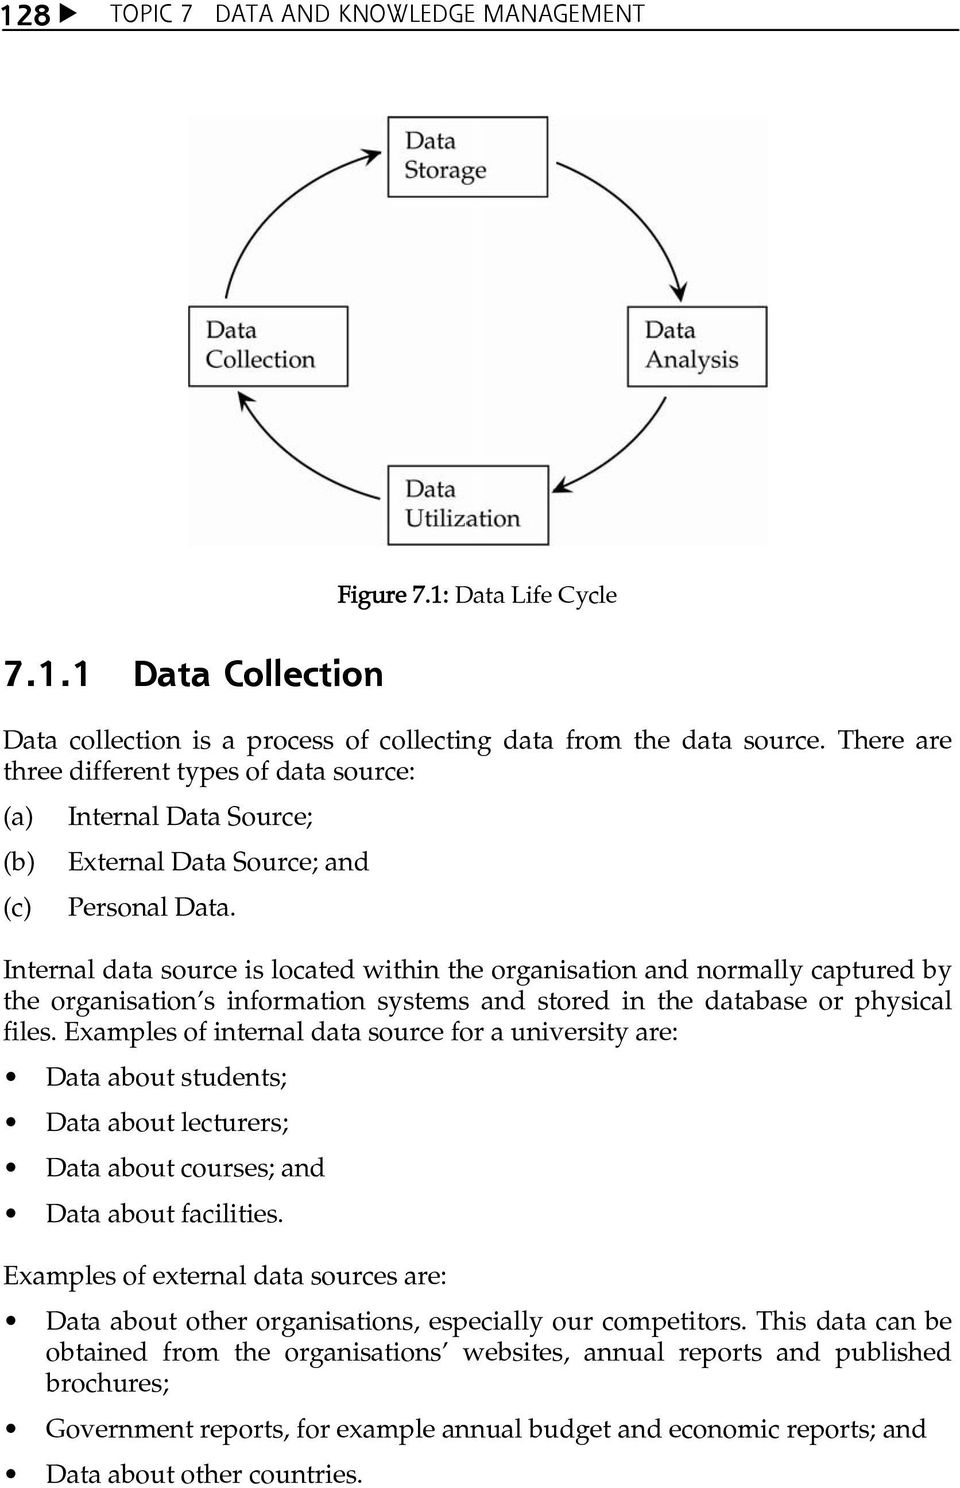 Internal data source is located within the organisation and normally captured by the organisationês information systems and stored in the database or physical files.